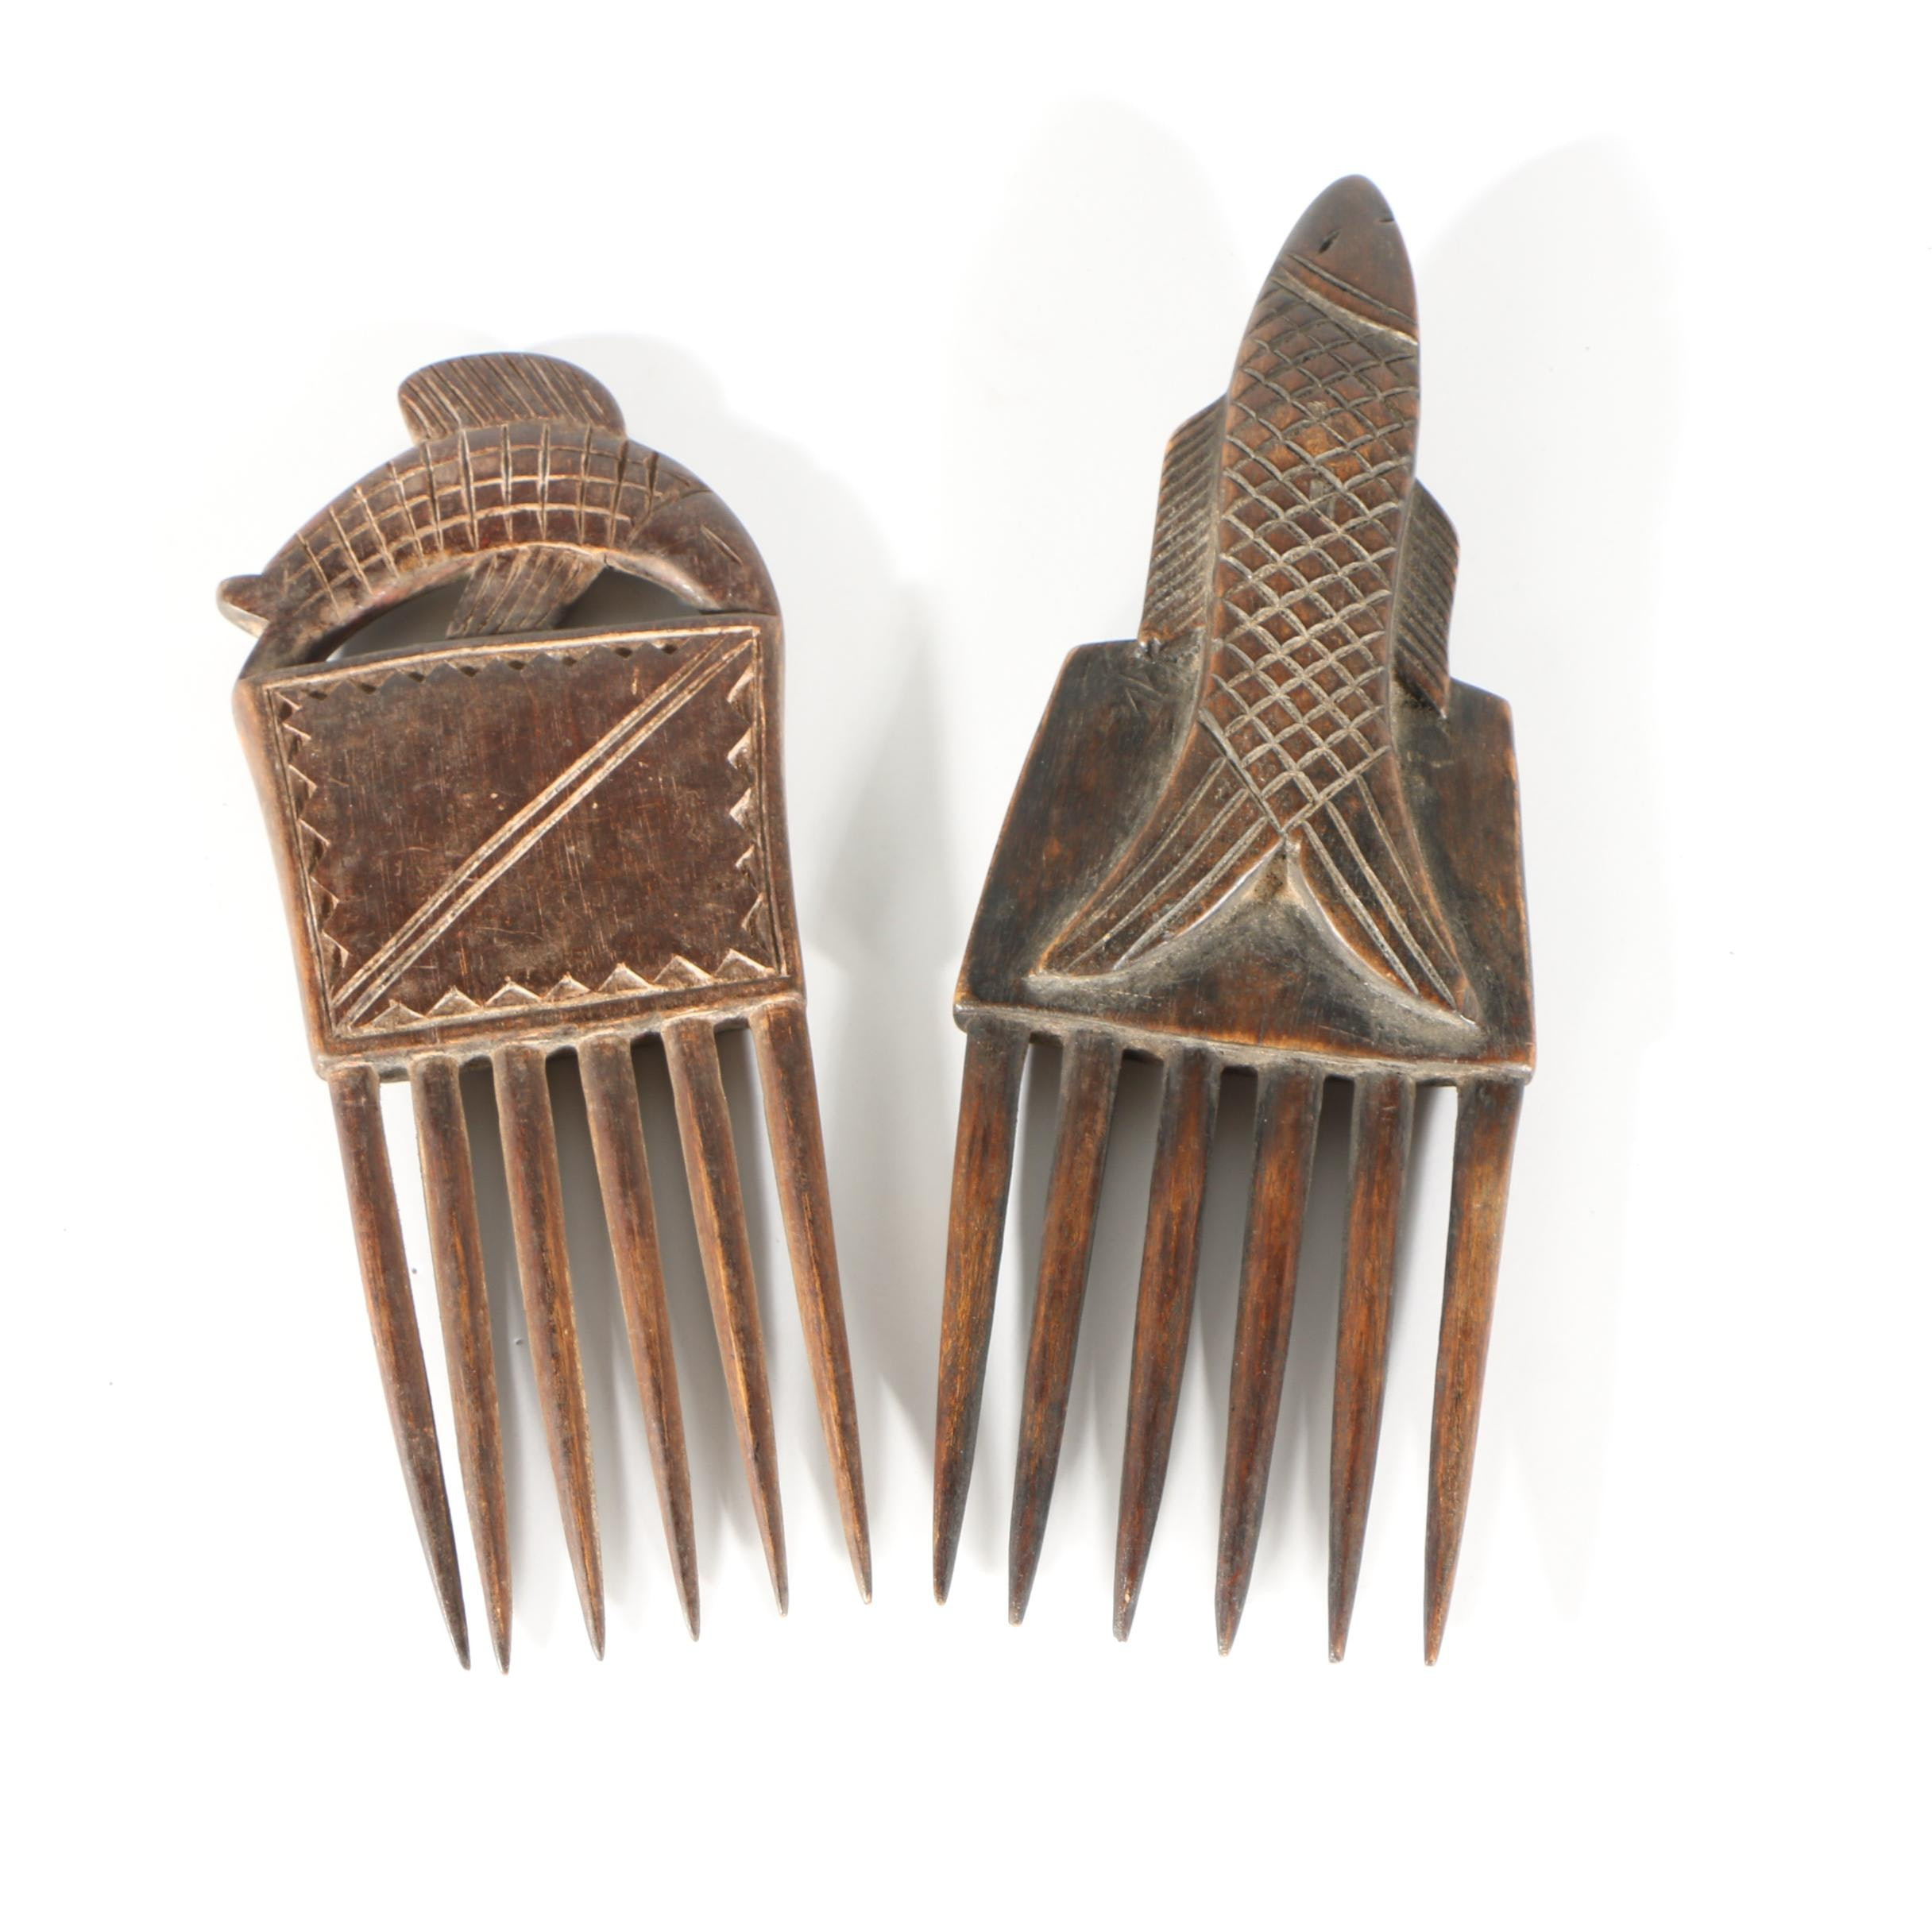 20th Century Ornamental Baule Combs from Côte d'Ivoire